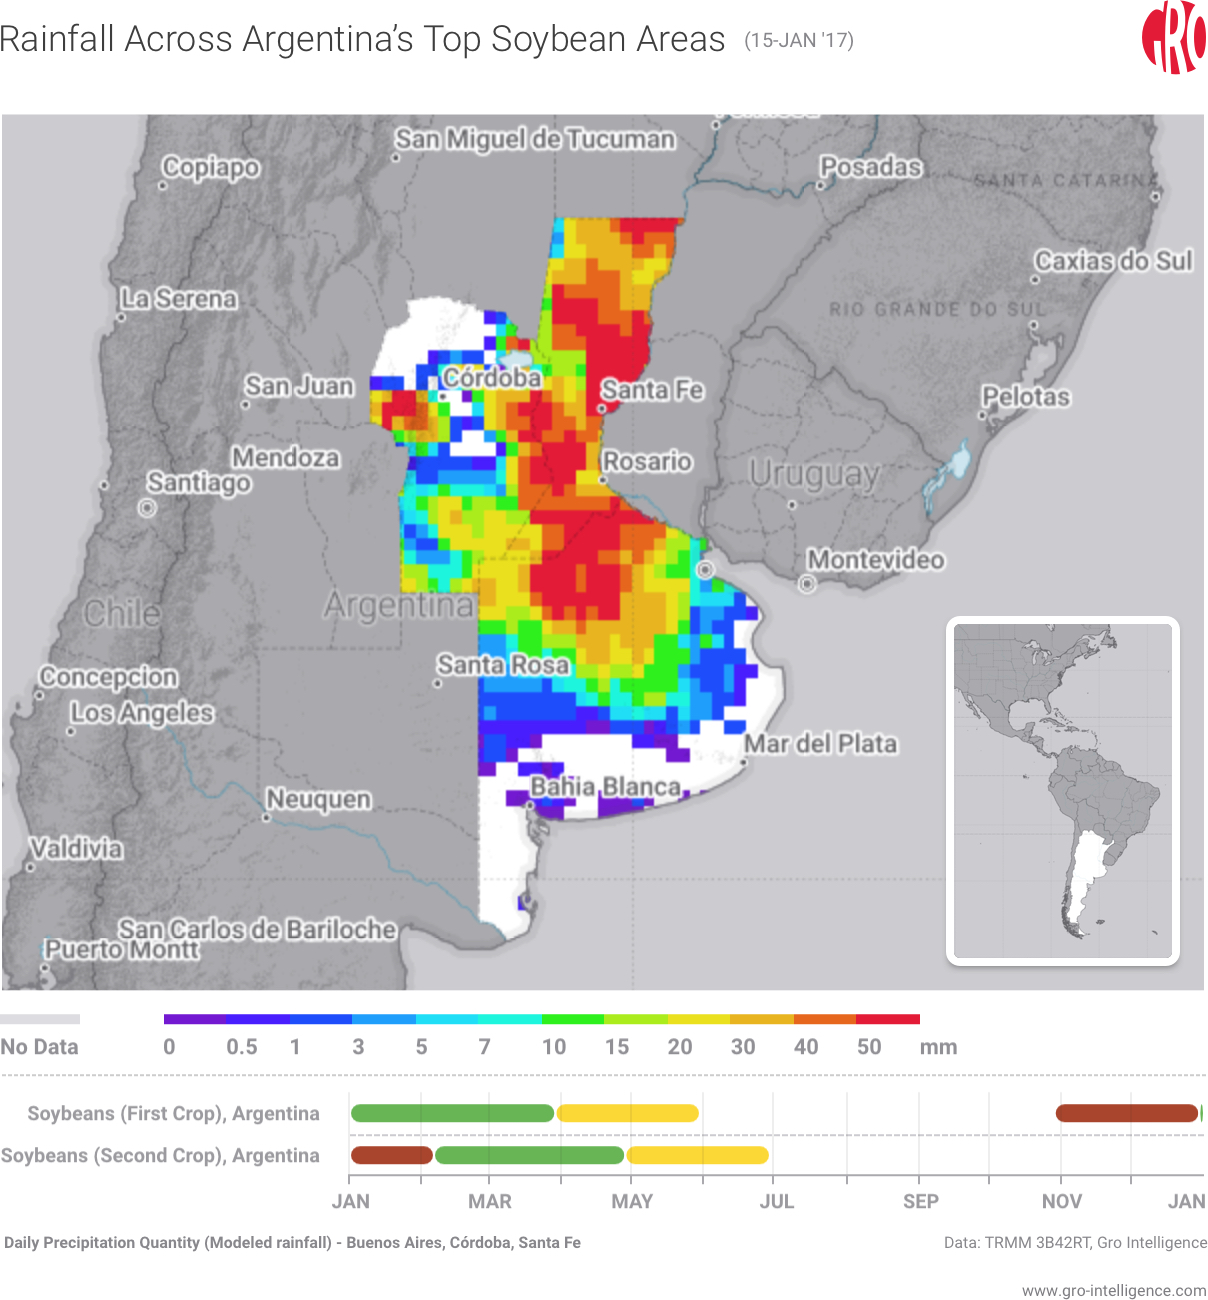 Rainfall Across Argentina's Top Soybean Areas